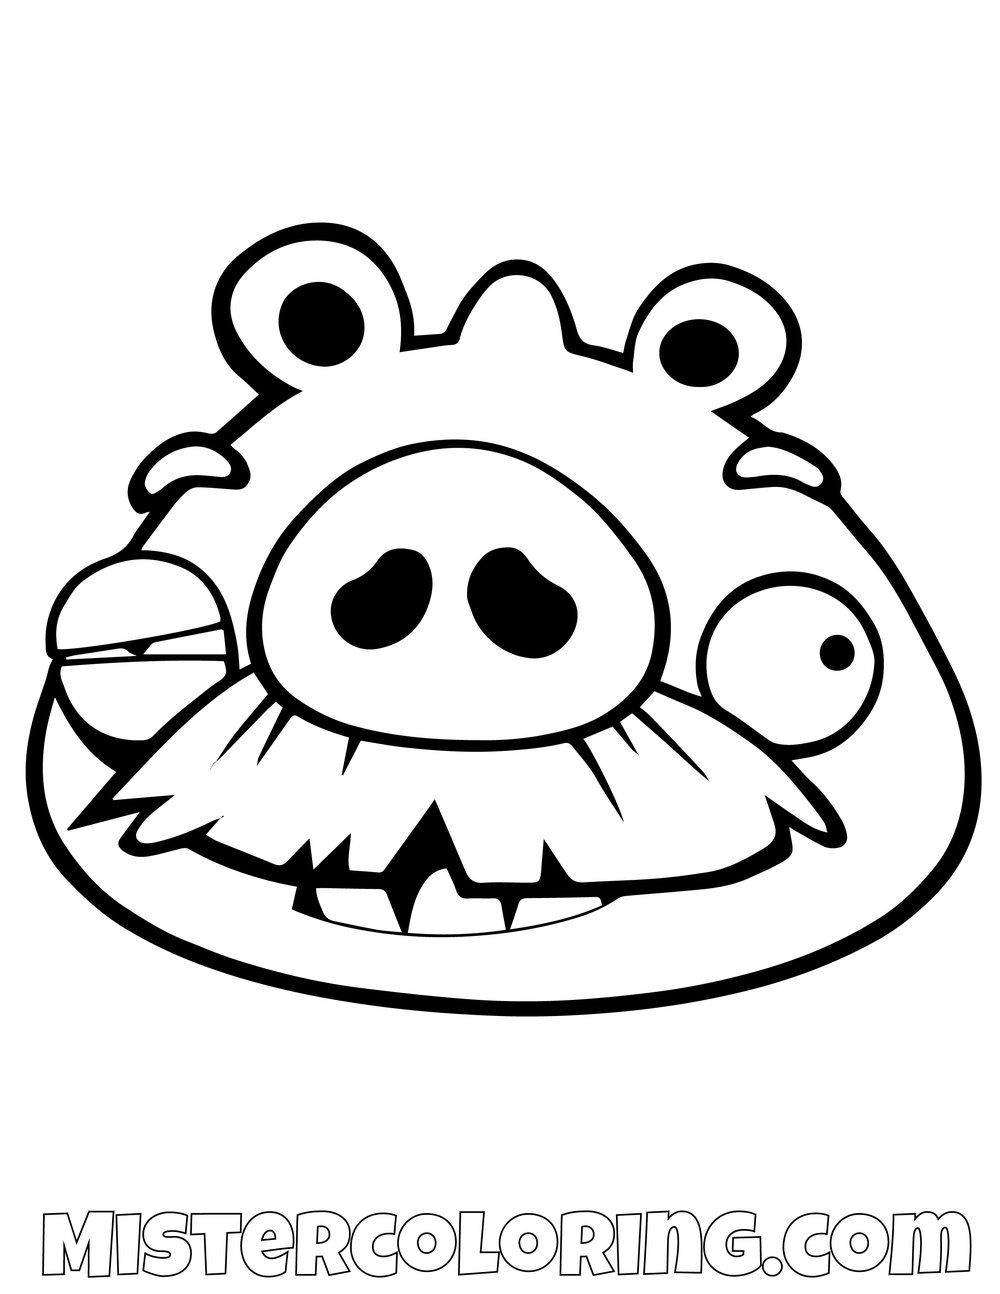 Angry Birds Halloween Kleurplaten.Pig Beat Up Angry Birds Coloring Pages Bird Coloring Pages